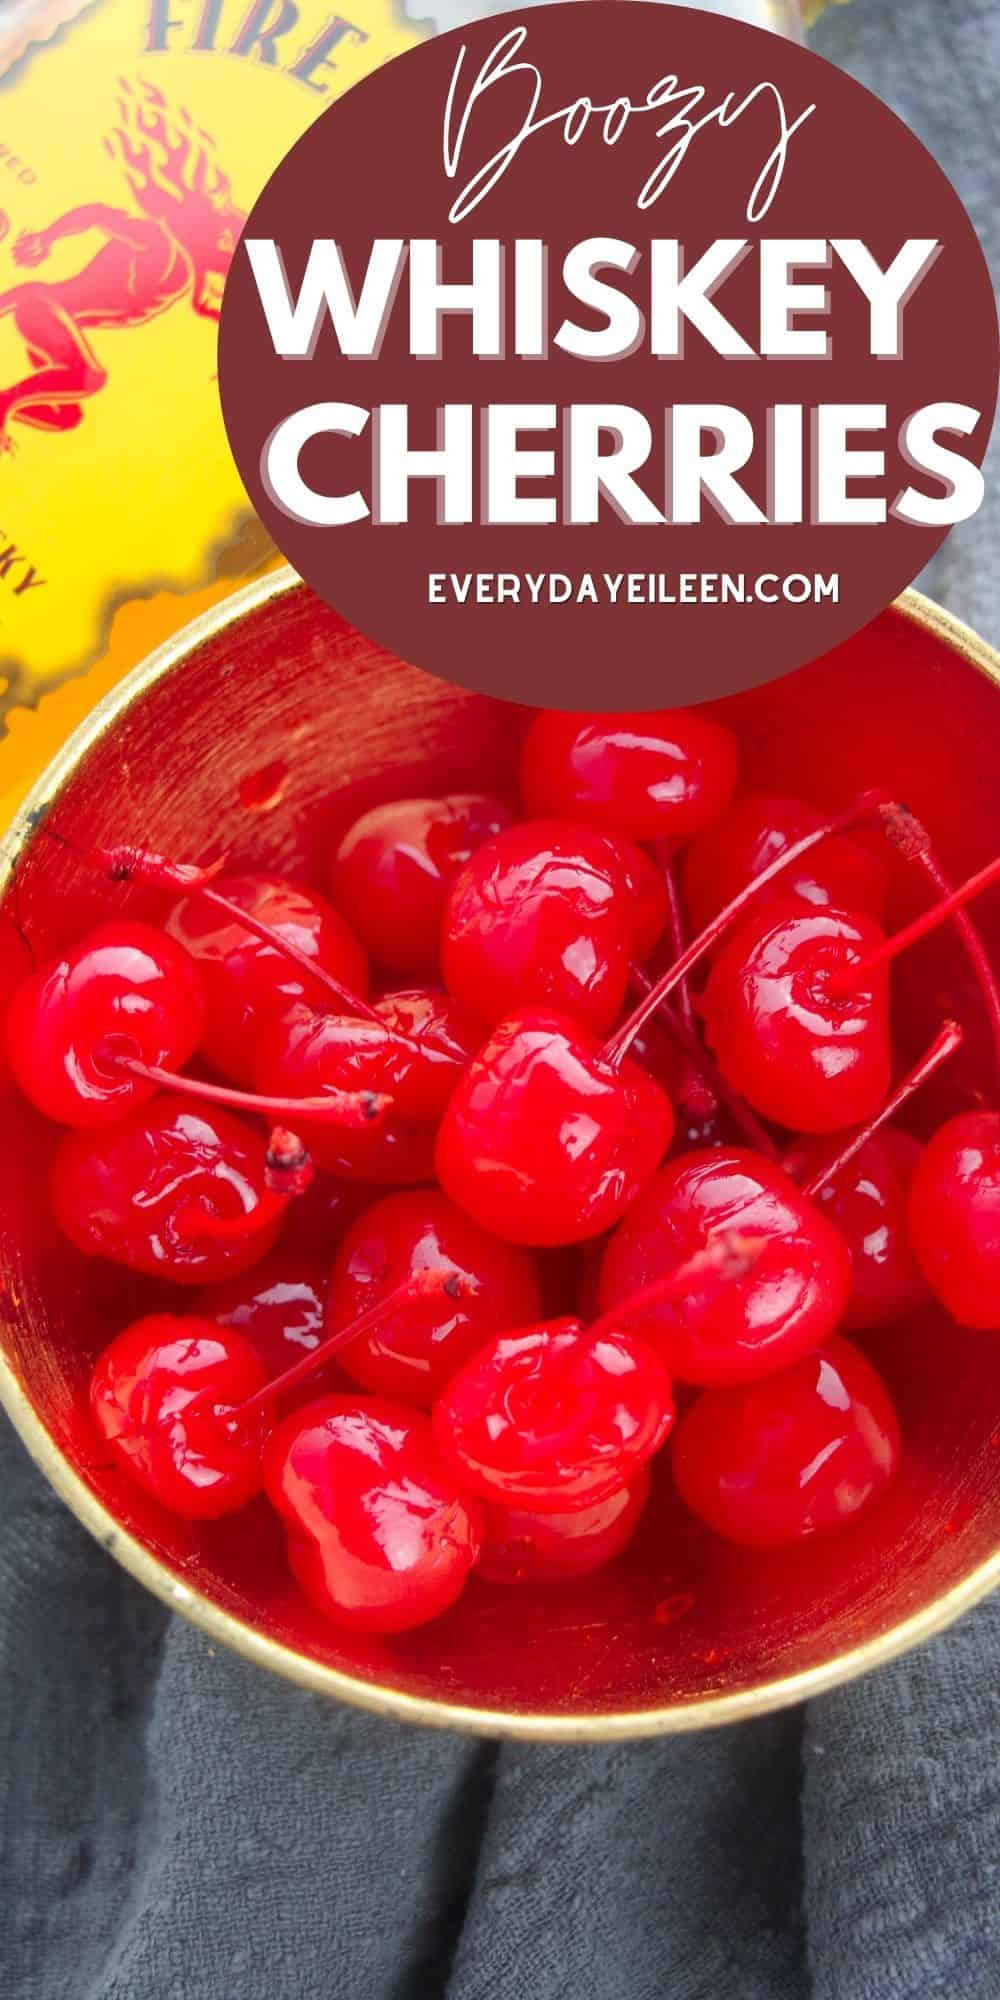 Maraschino Cherries infused with Cinnamon Whiskey are a fabulous treat. Great for the adults at parties or drink garnishes. A wonderful gift for family and friends. #boozycherries #drunkencherries #everydayeileen #foodgifts  via @/everydayeileen/